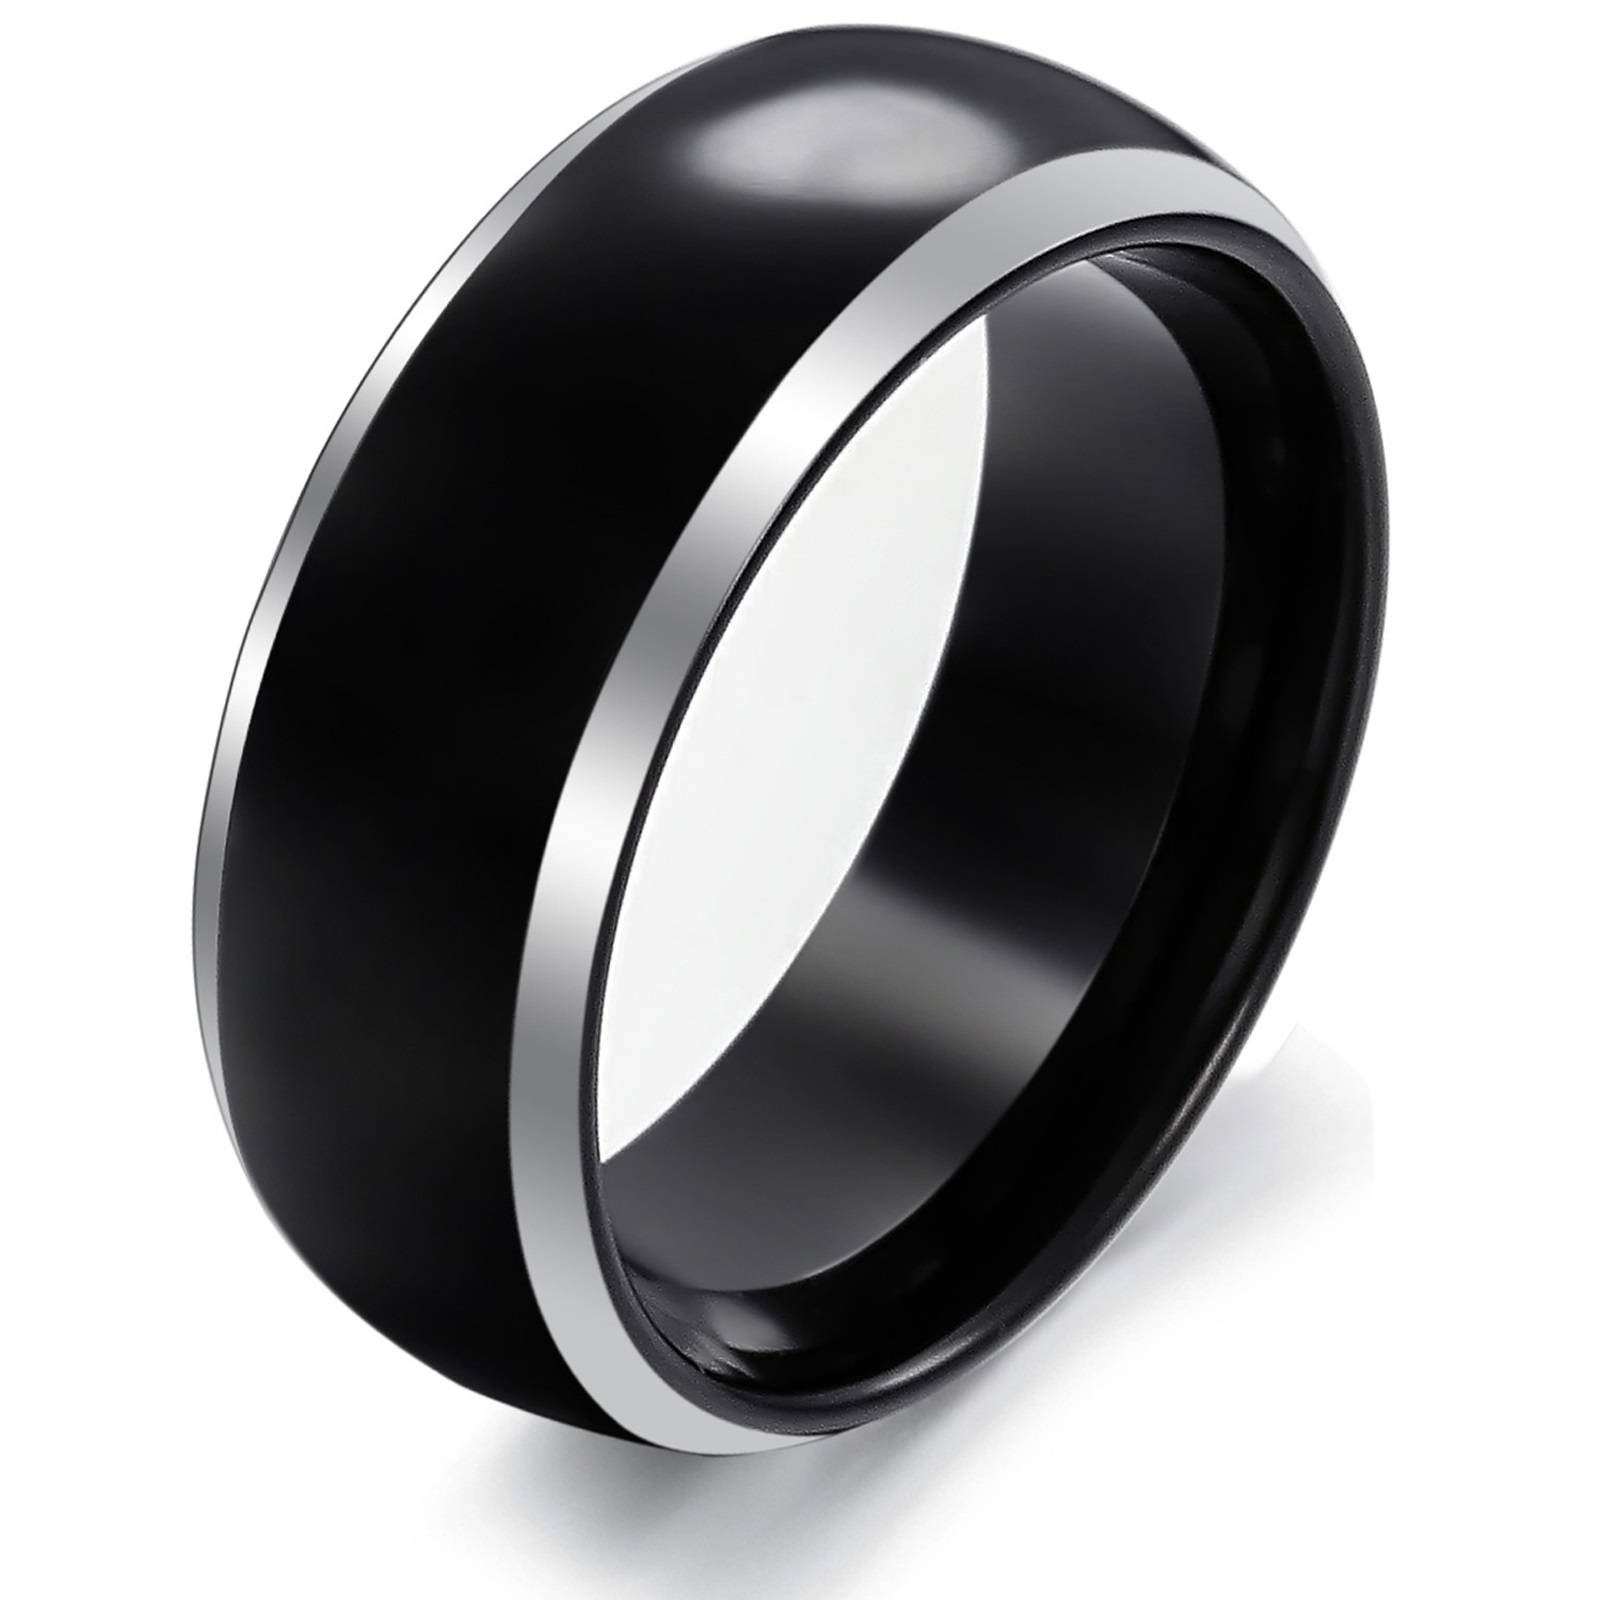 Some Designs Of Black Tungsten Wedding Bands | Wedding Ideas With Black Onyx Wedding Bands (View 13 of 15)